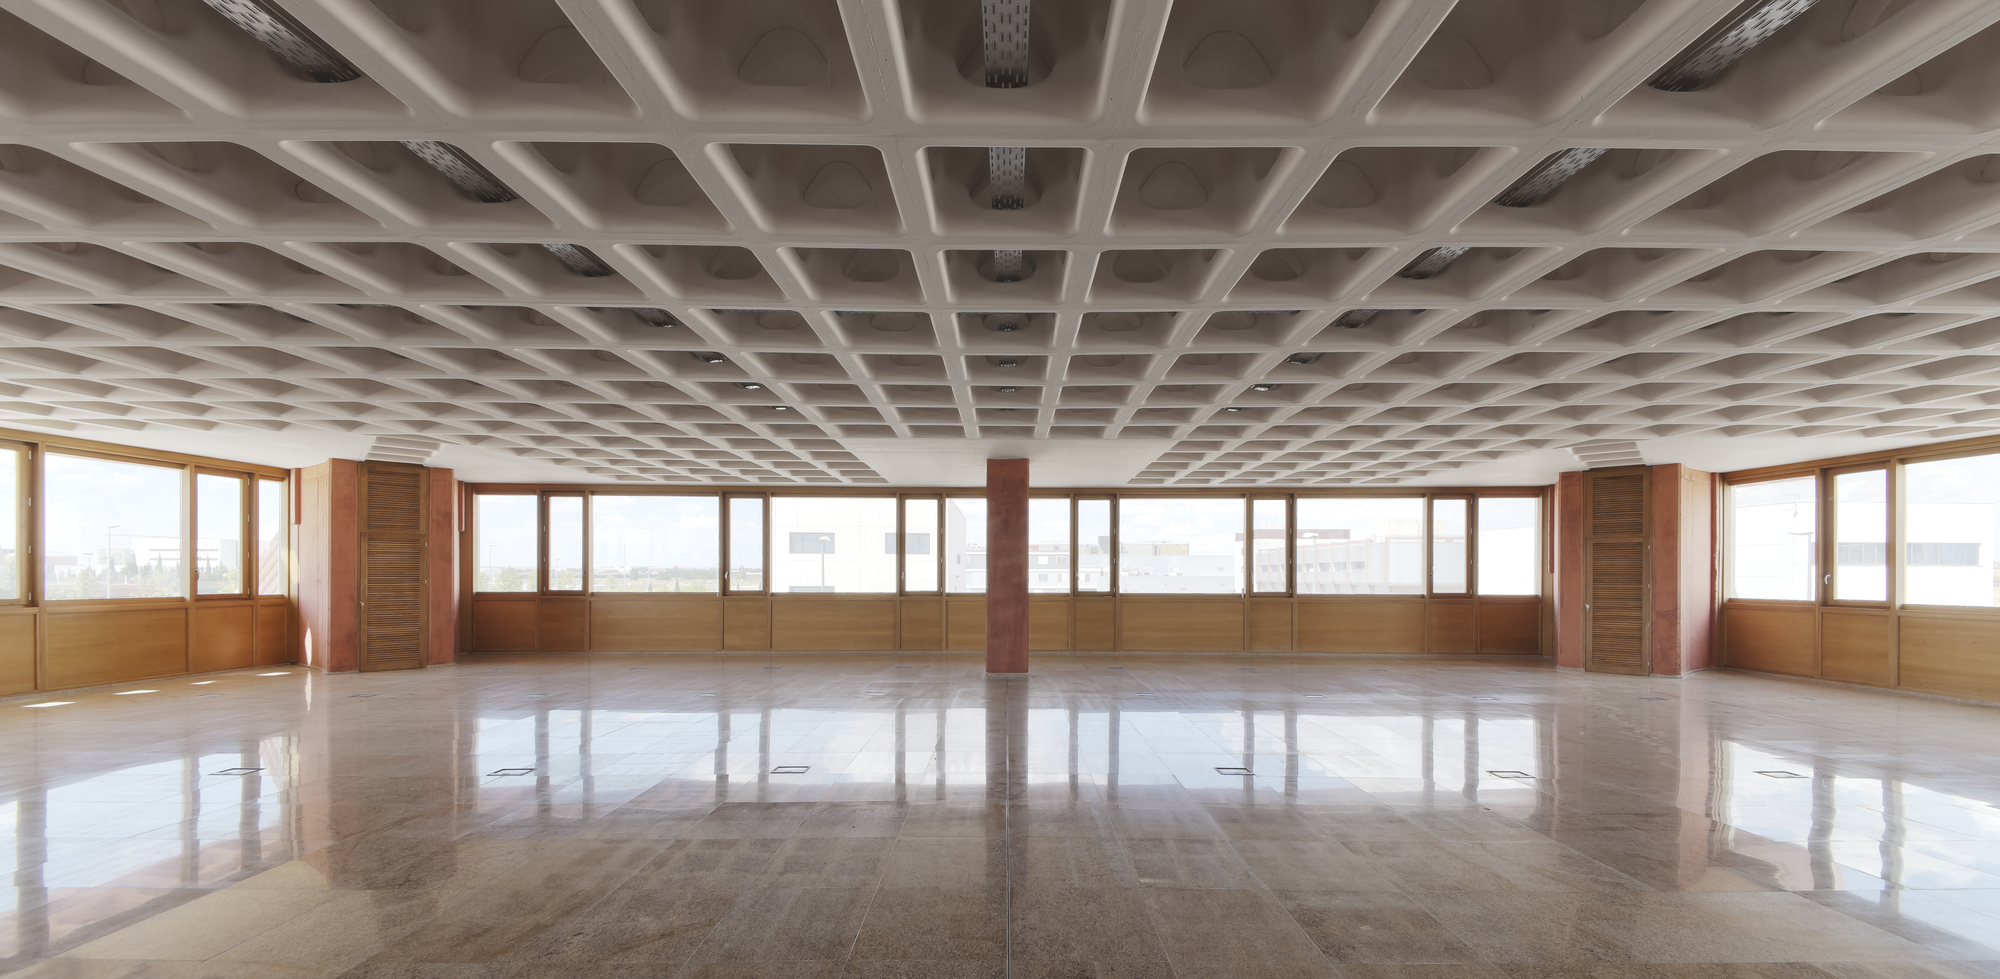 This Innovative Concrete Slab System Uses Up To 55 Less